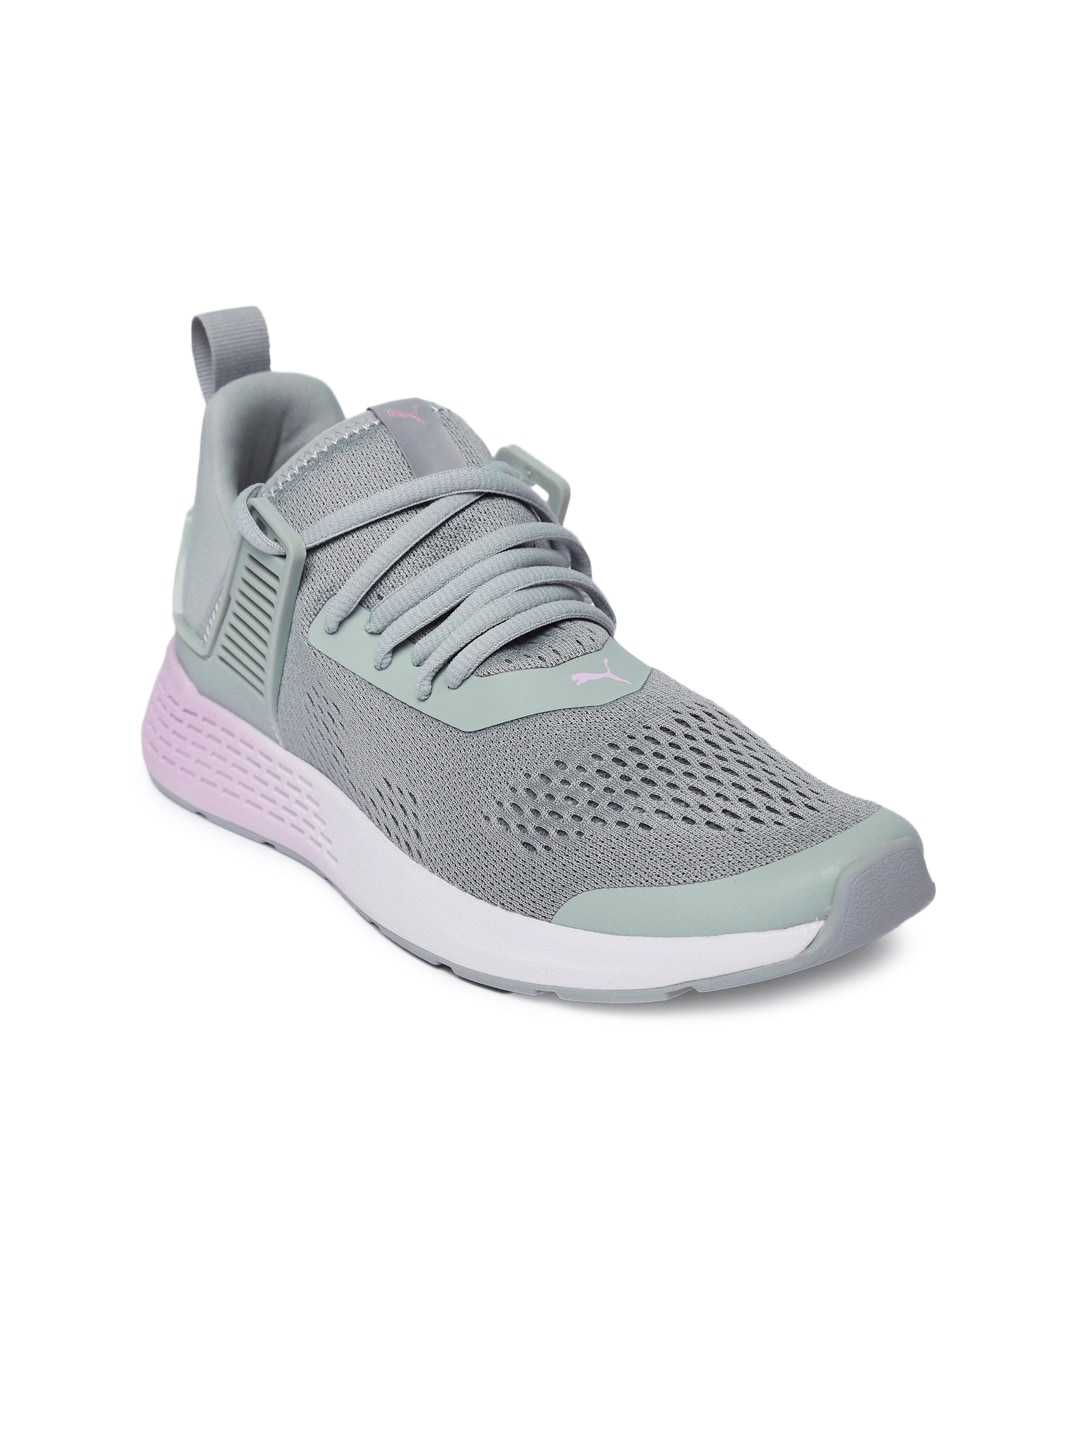 5d463f67ef2 Women Sports Shoes Store Sneakers - Buy Women Sports Shoes Store Sneakers  online in India